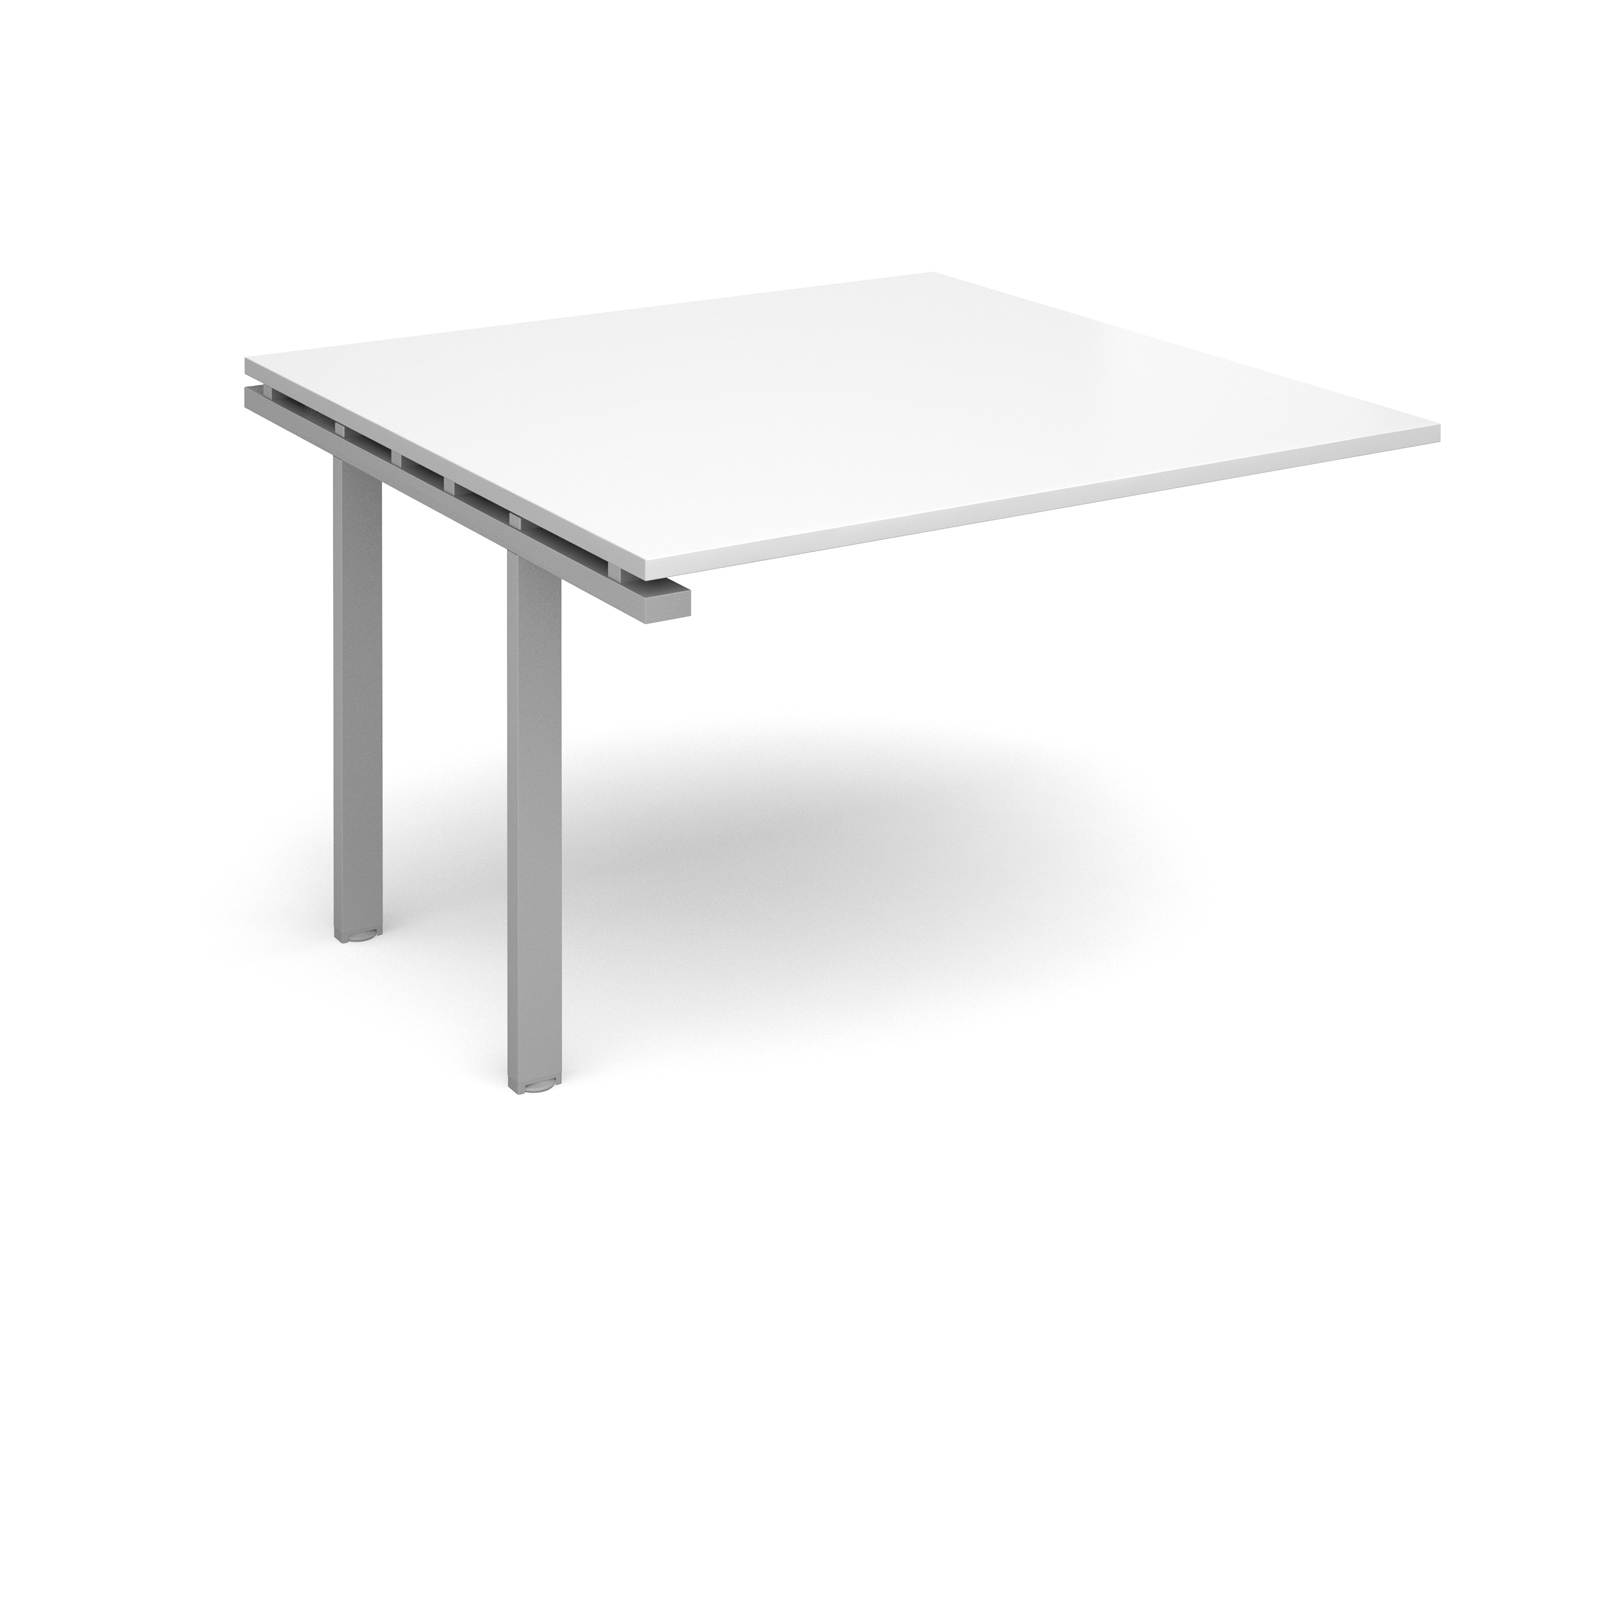 Image for Adapt II Boardroom Table Add On Unit 1200x1200mm Silver Frame White Top